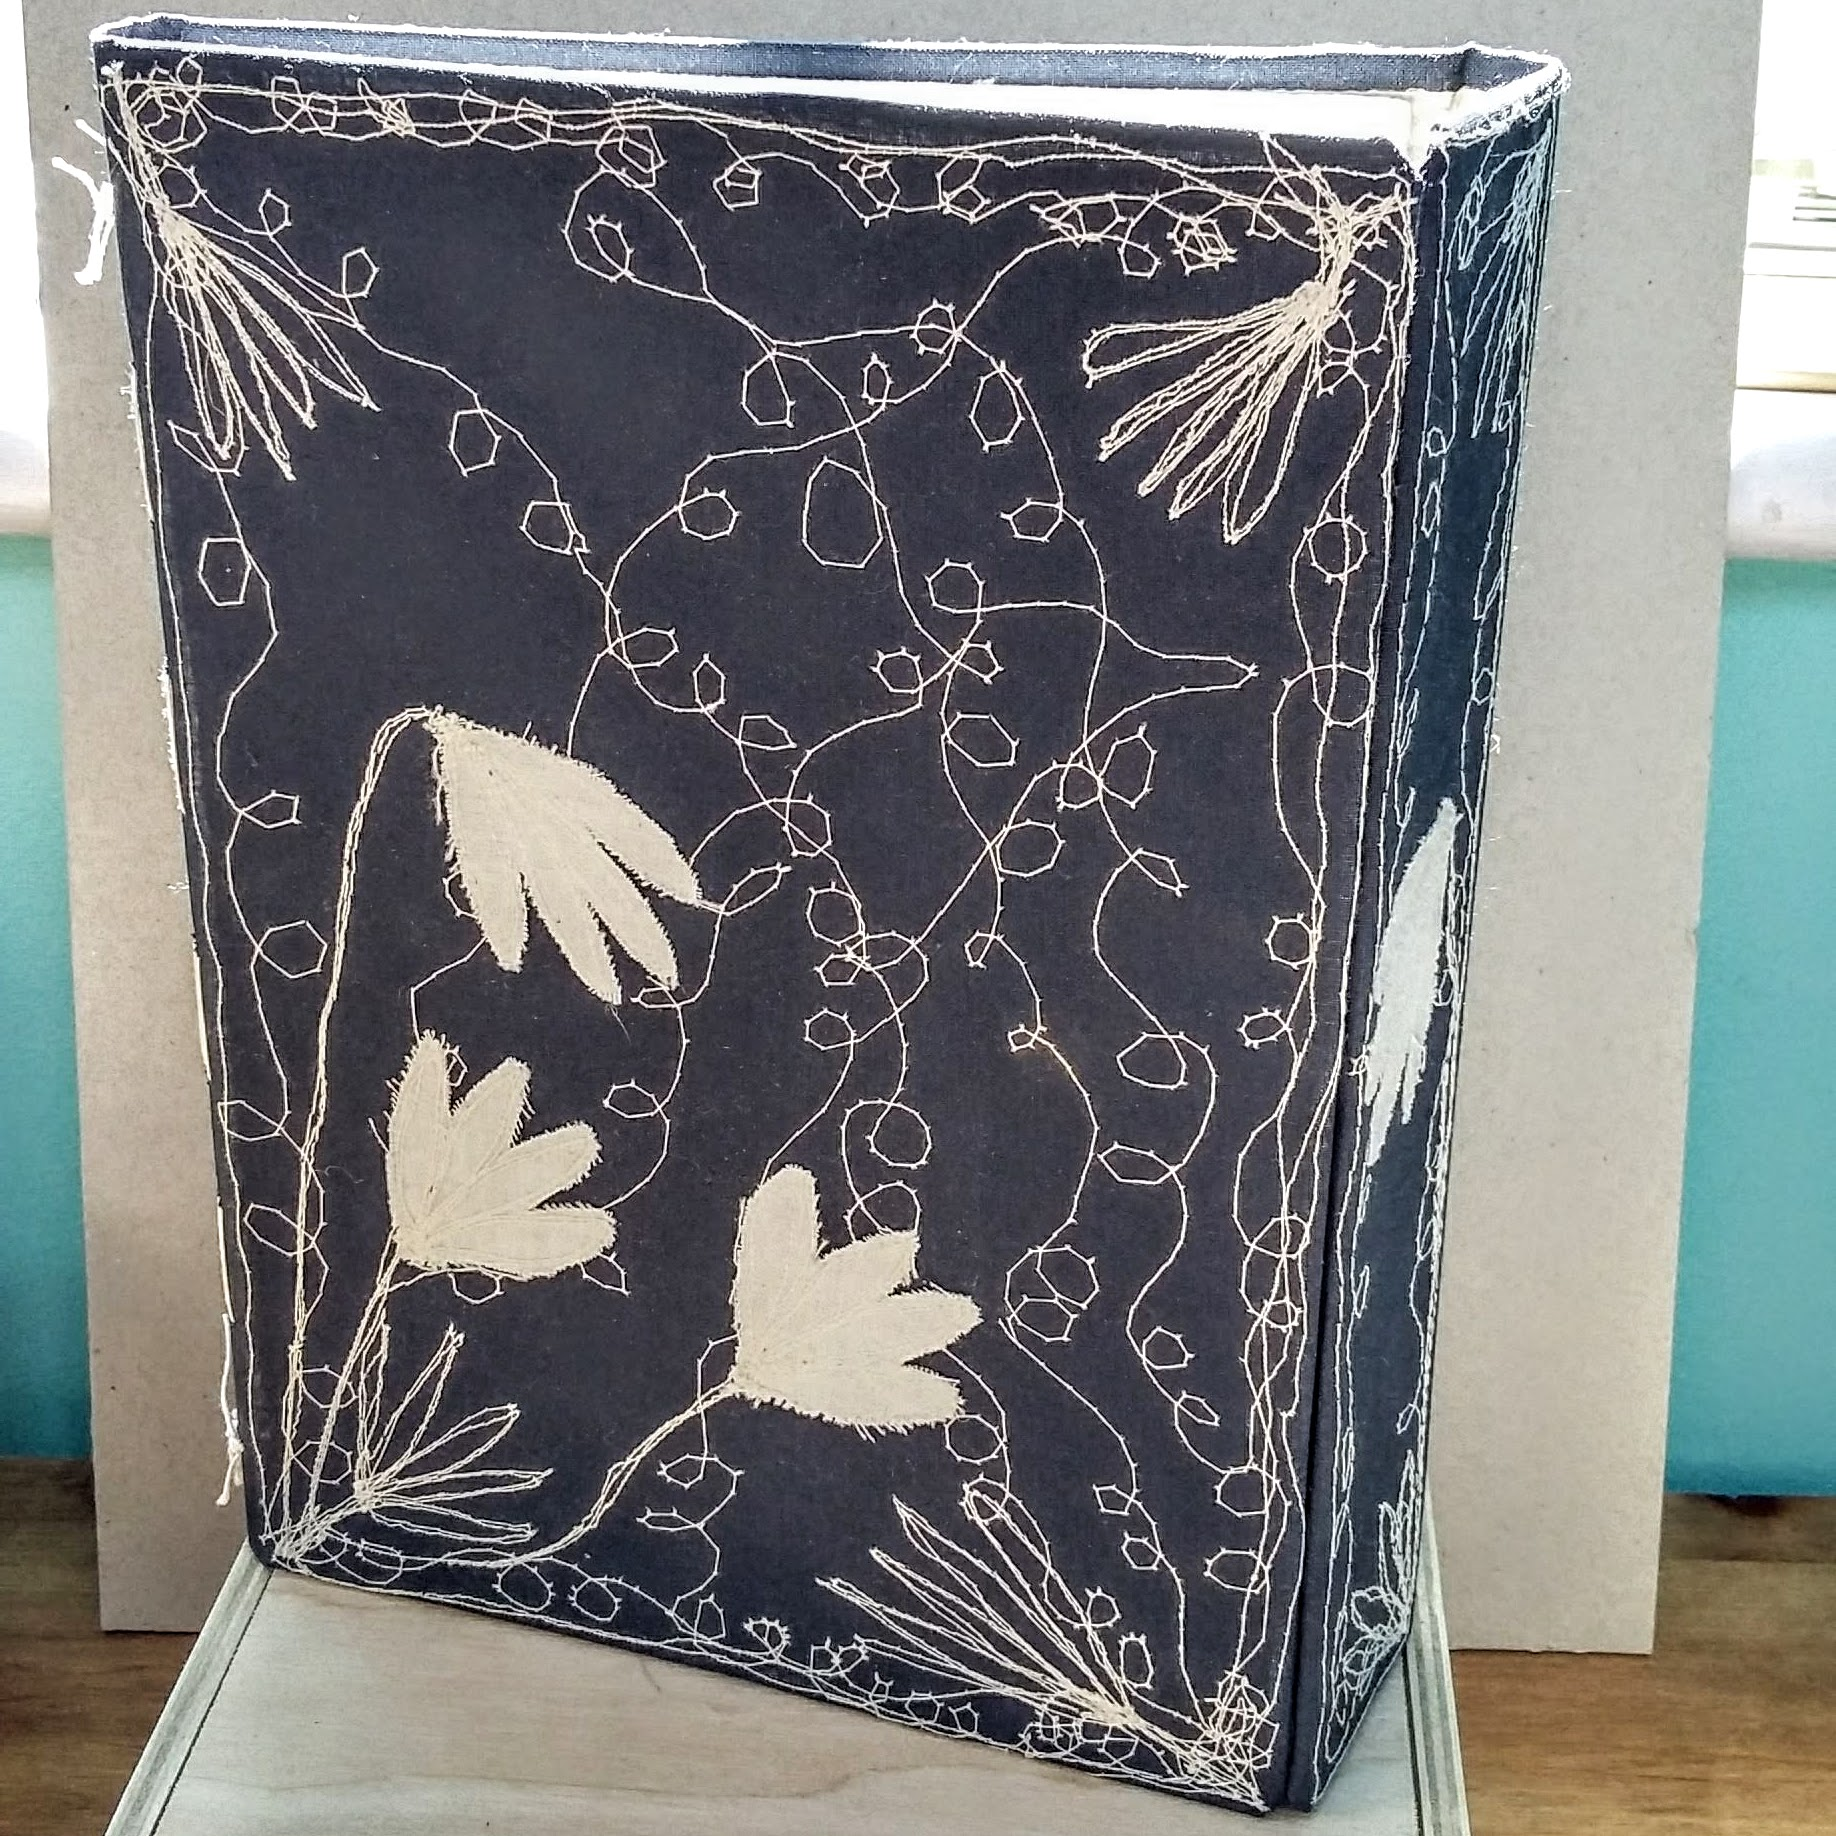 Blue with white flowers book, with magnet closure. 16 x 22 cm. 64 sides, 32 pages. £40 plus p&p